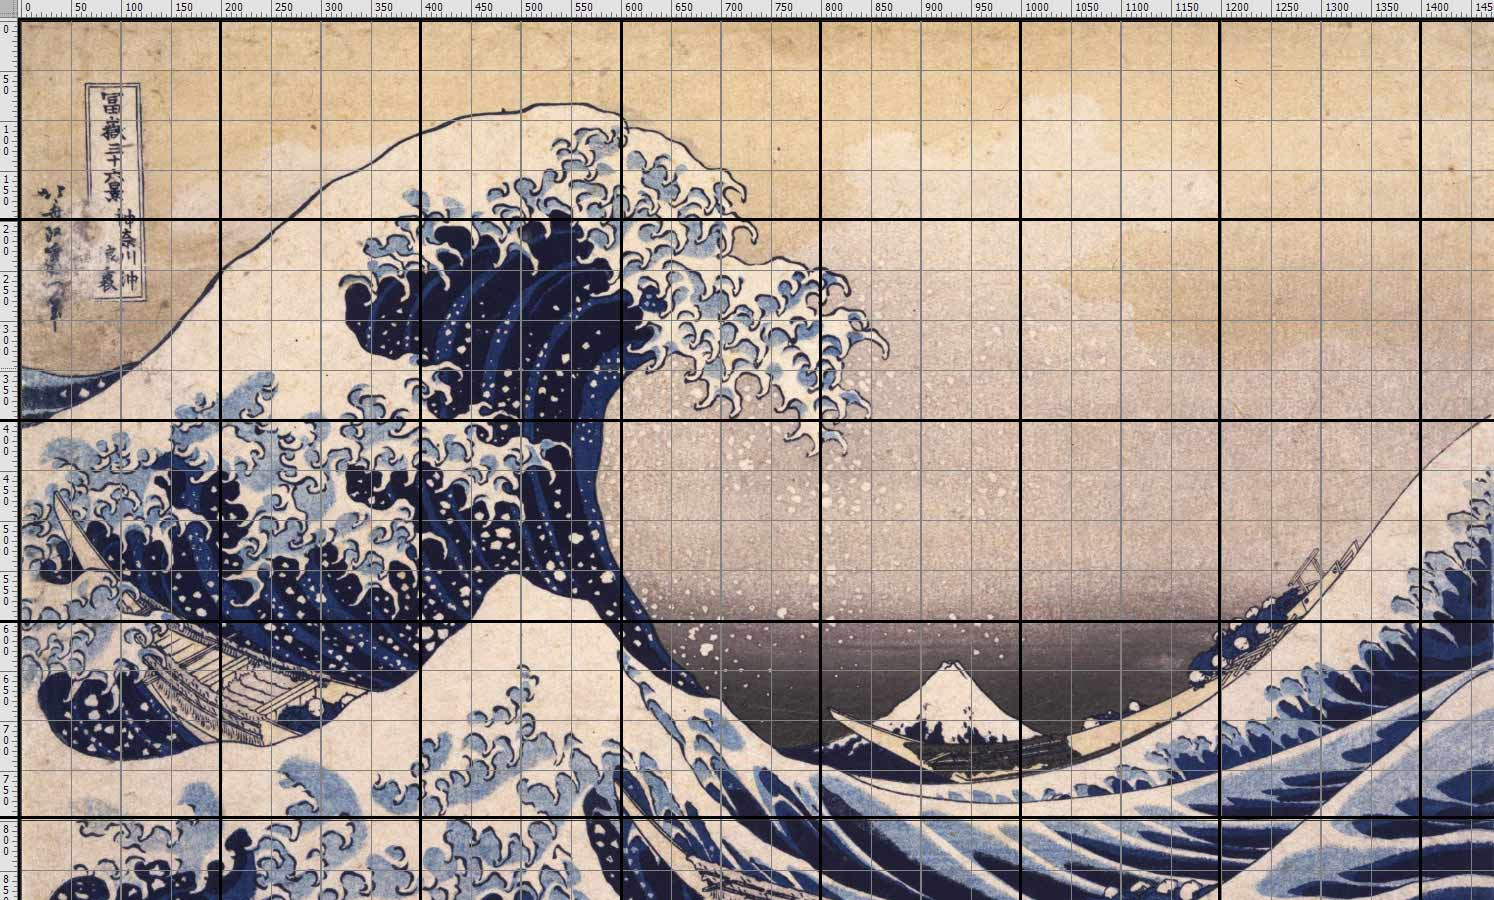 To draw The great wave of Hokusai